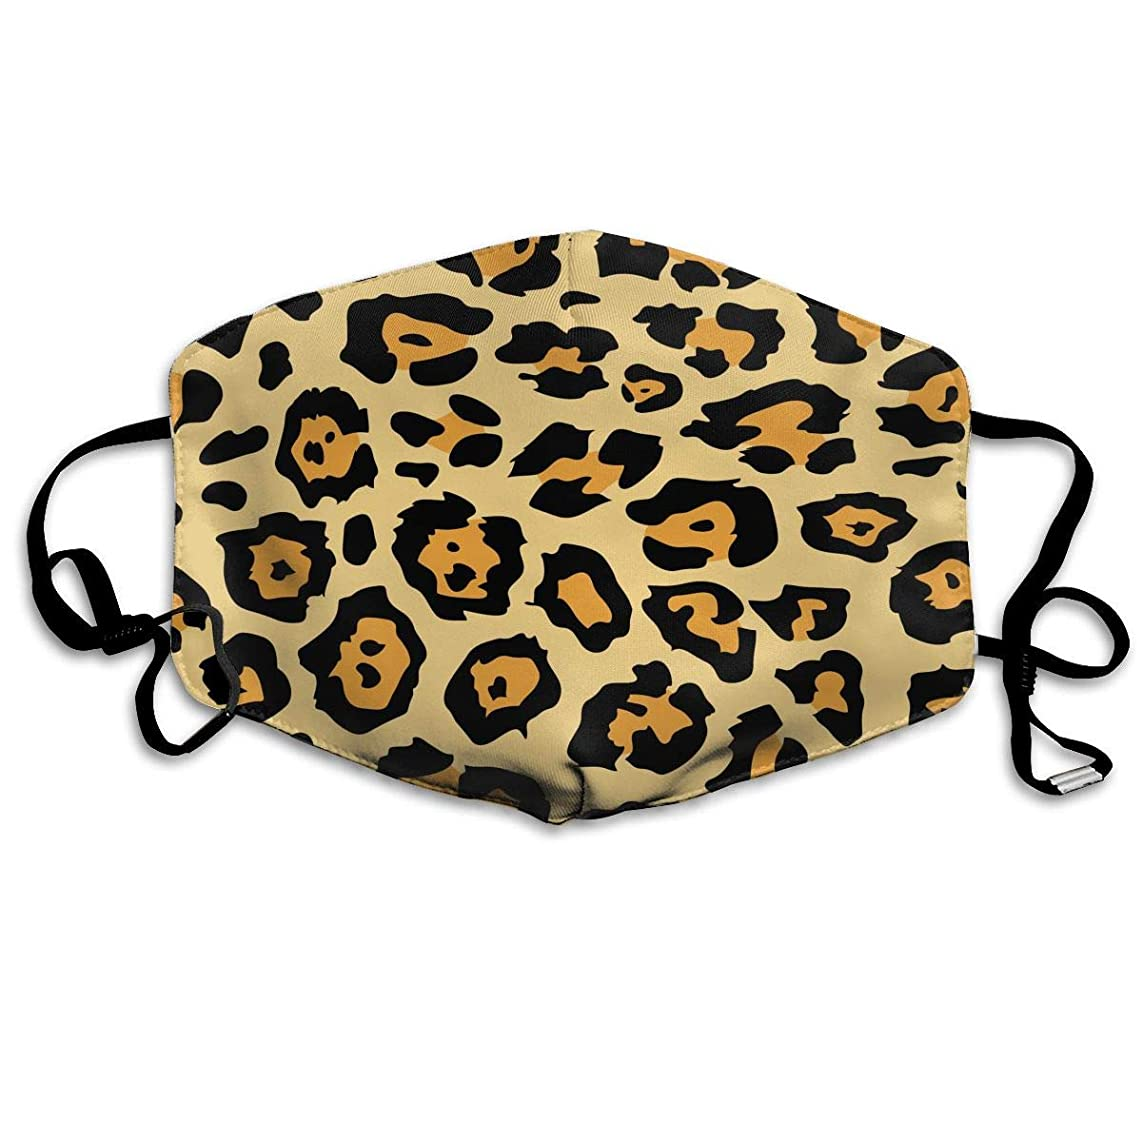 Hongclever Reusable Mouth Face Masks Leopard Earloop Mask Washable Outdoor Anti-Dust Allergy Windproof